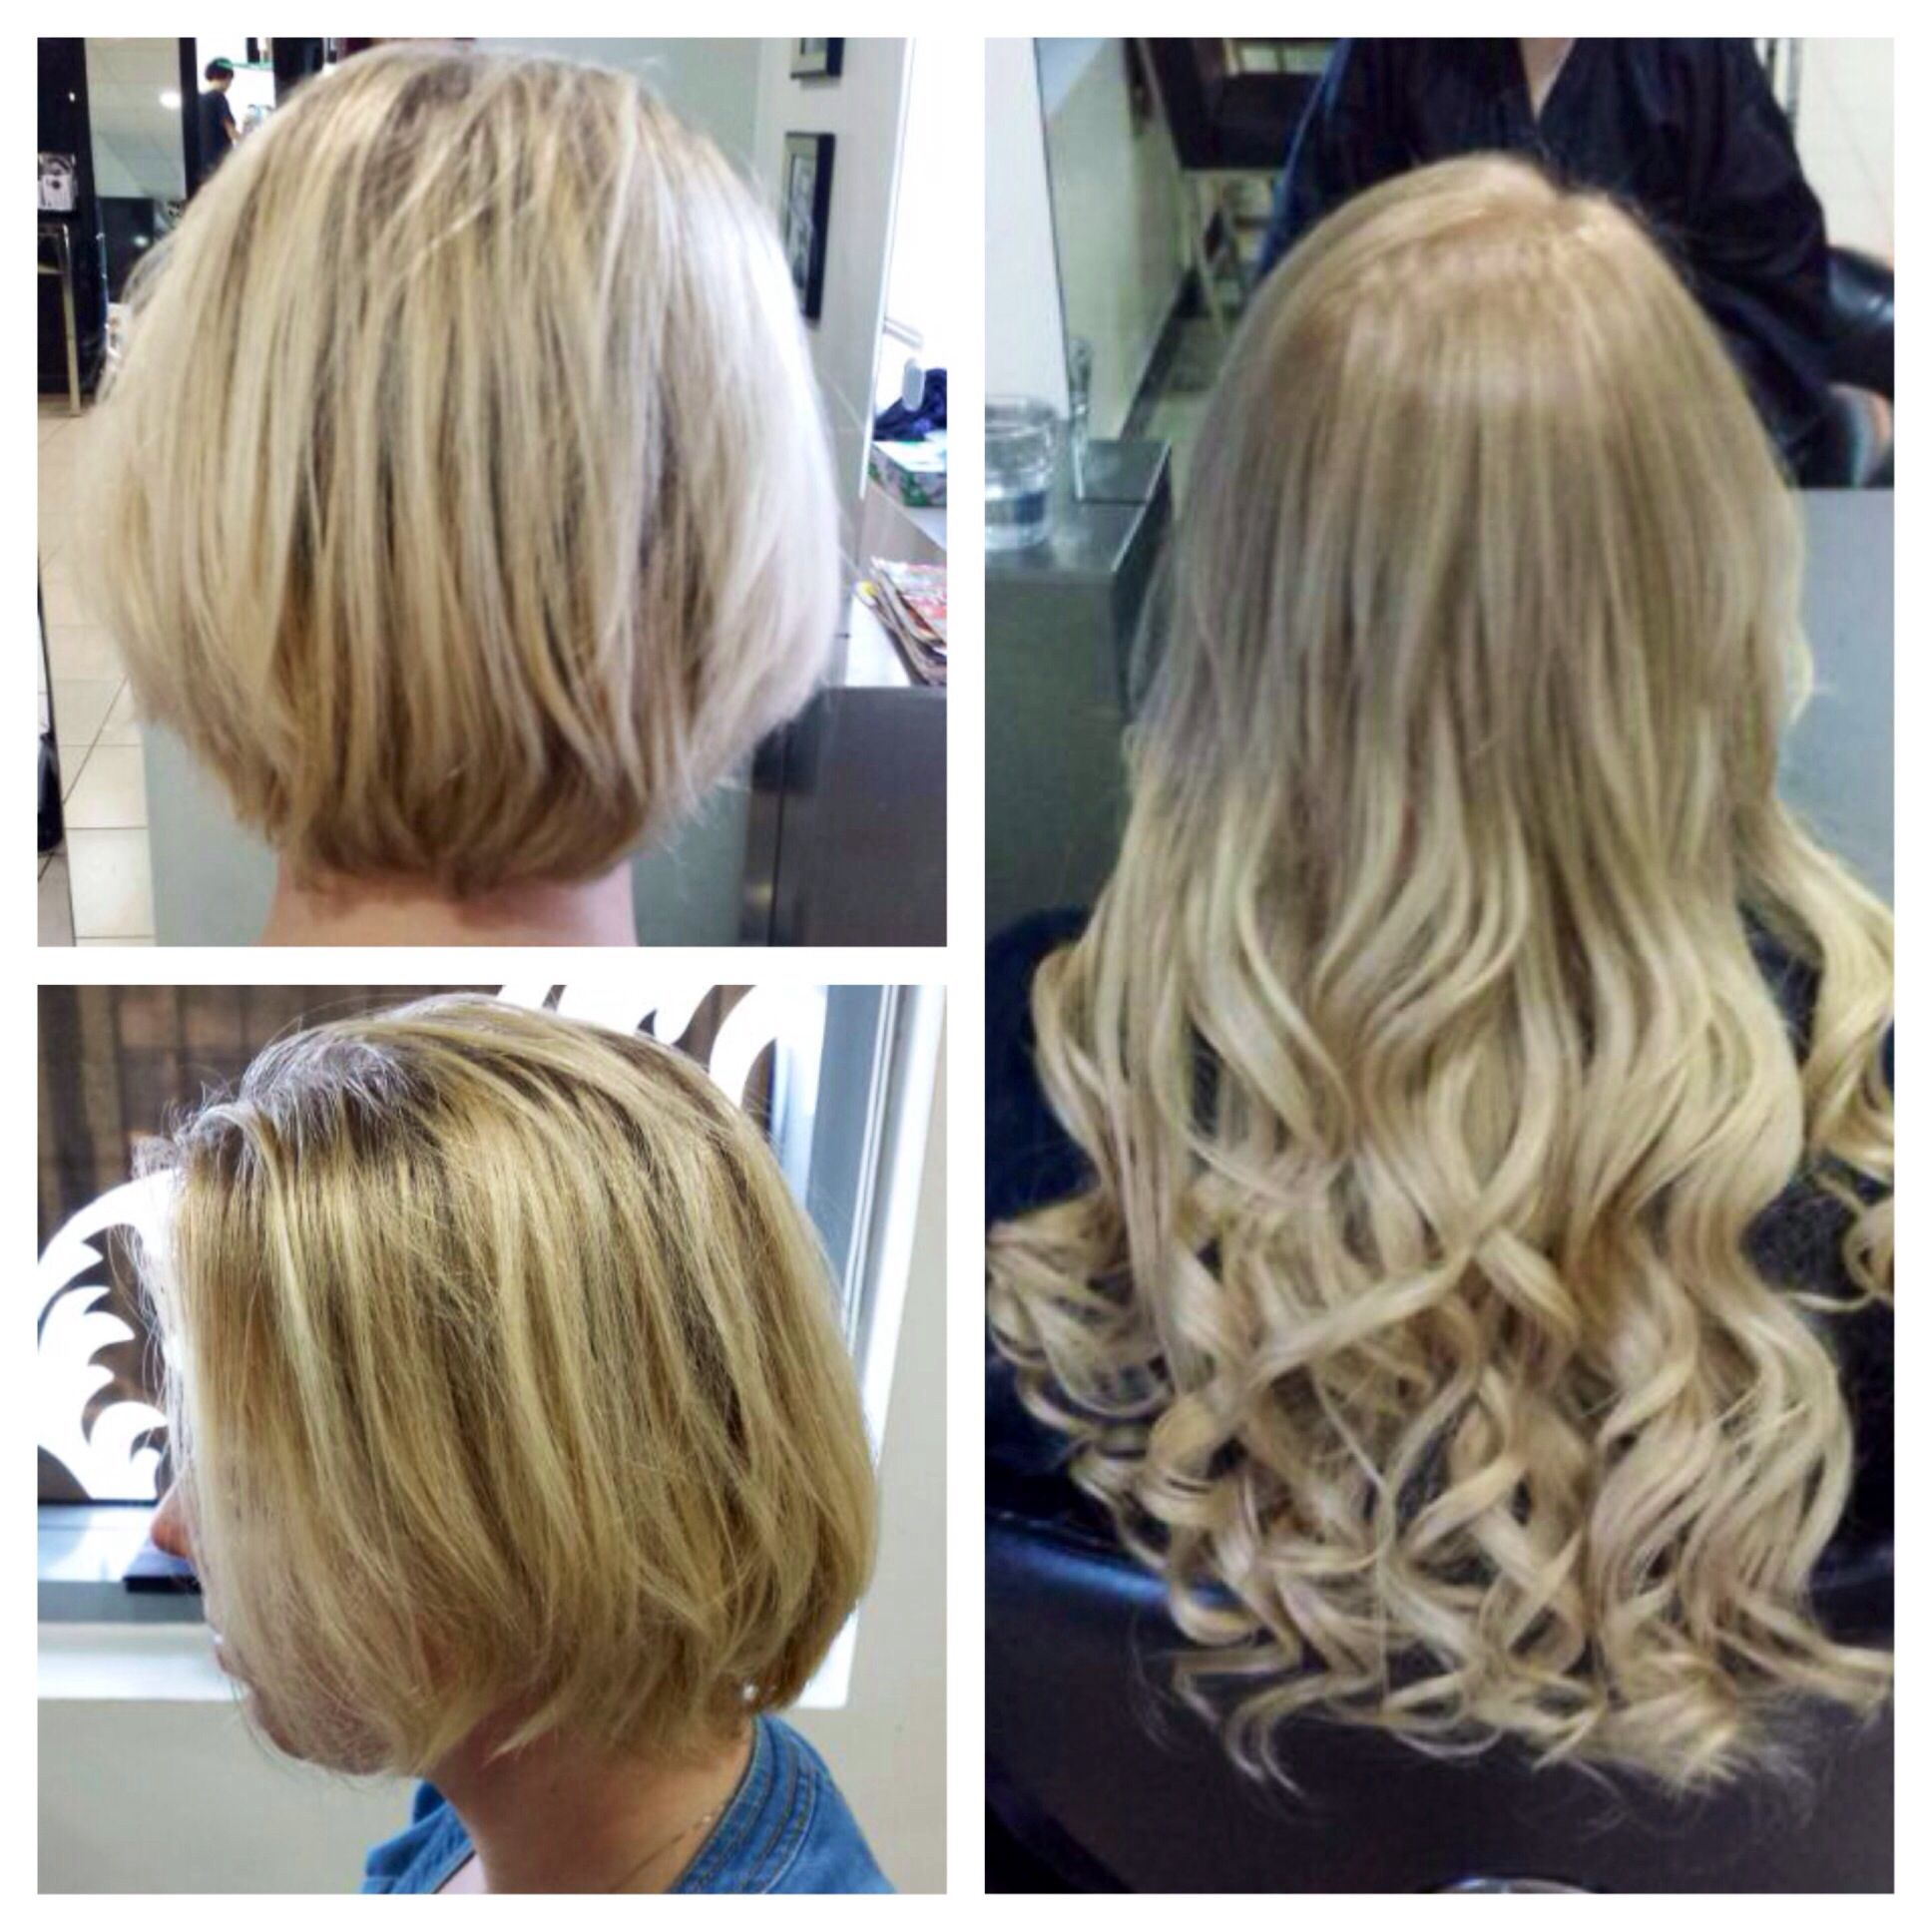 Beautiful Dream Catcher Extensions And Wella Colour Treatment By Glamour Hair Salon Abu Dhabi